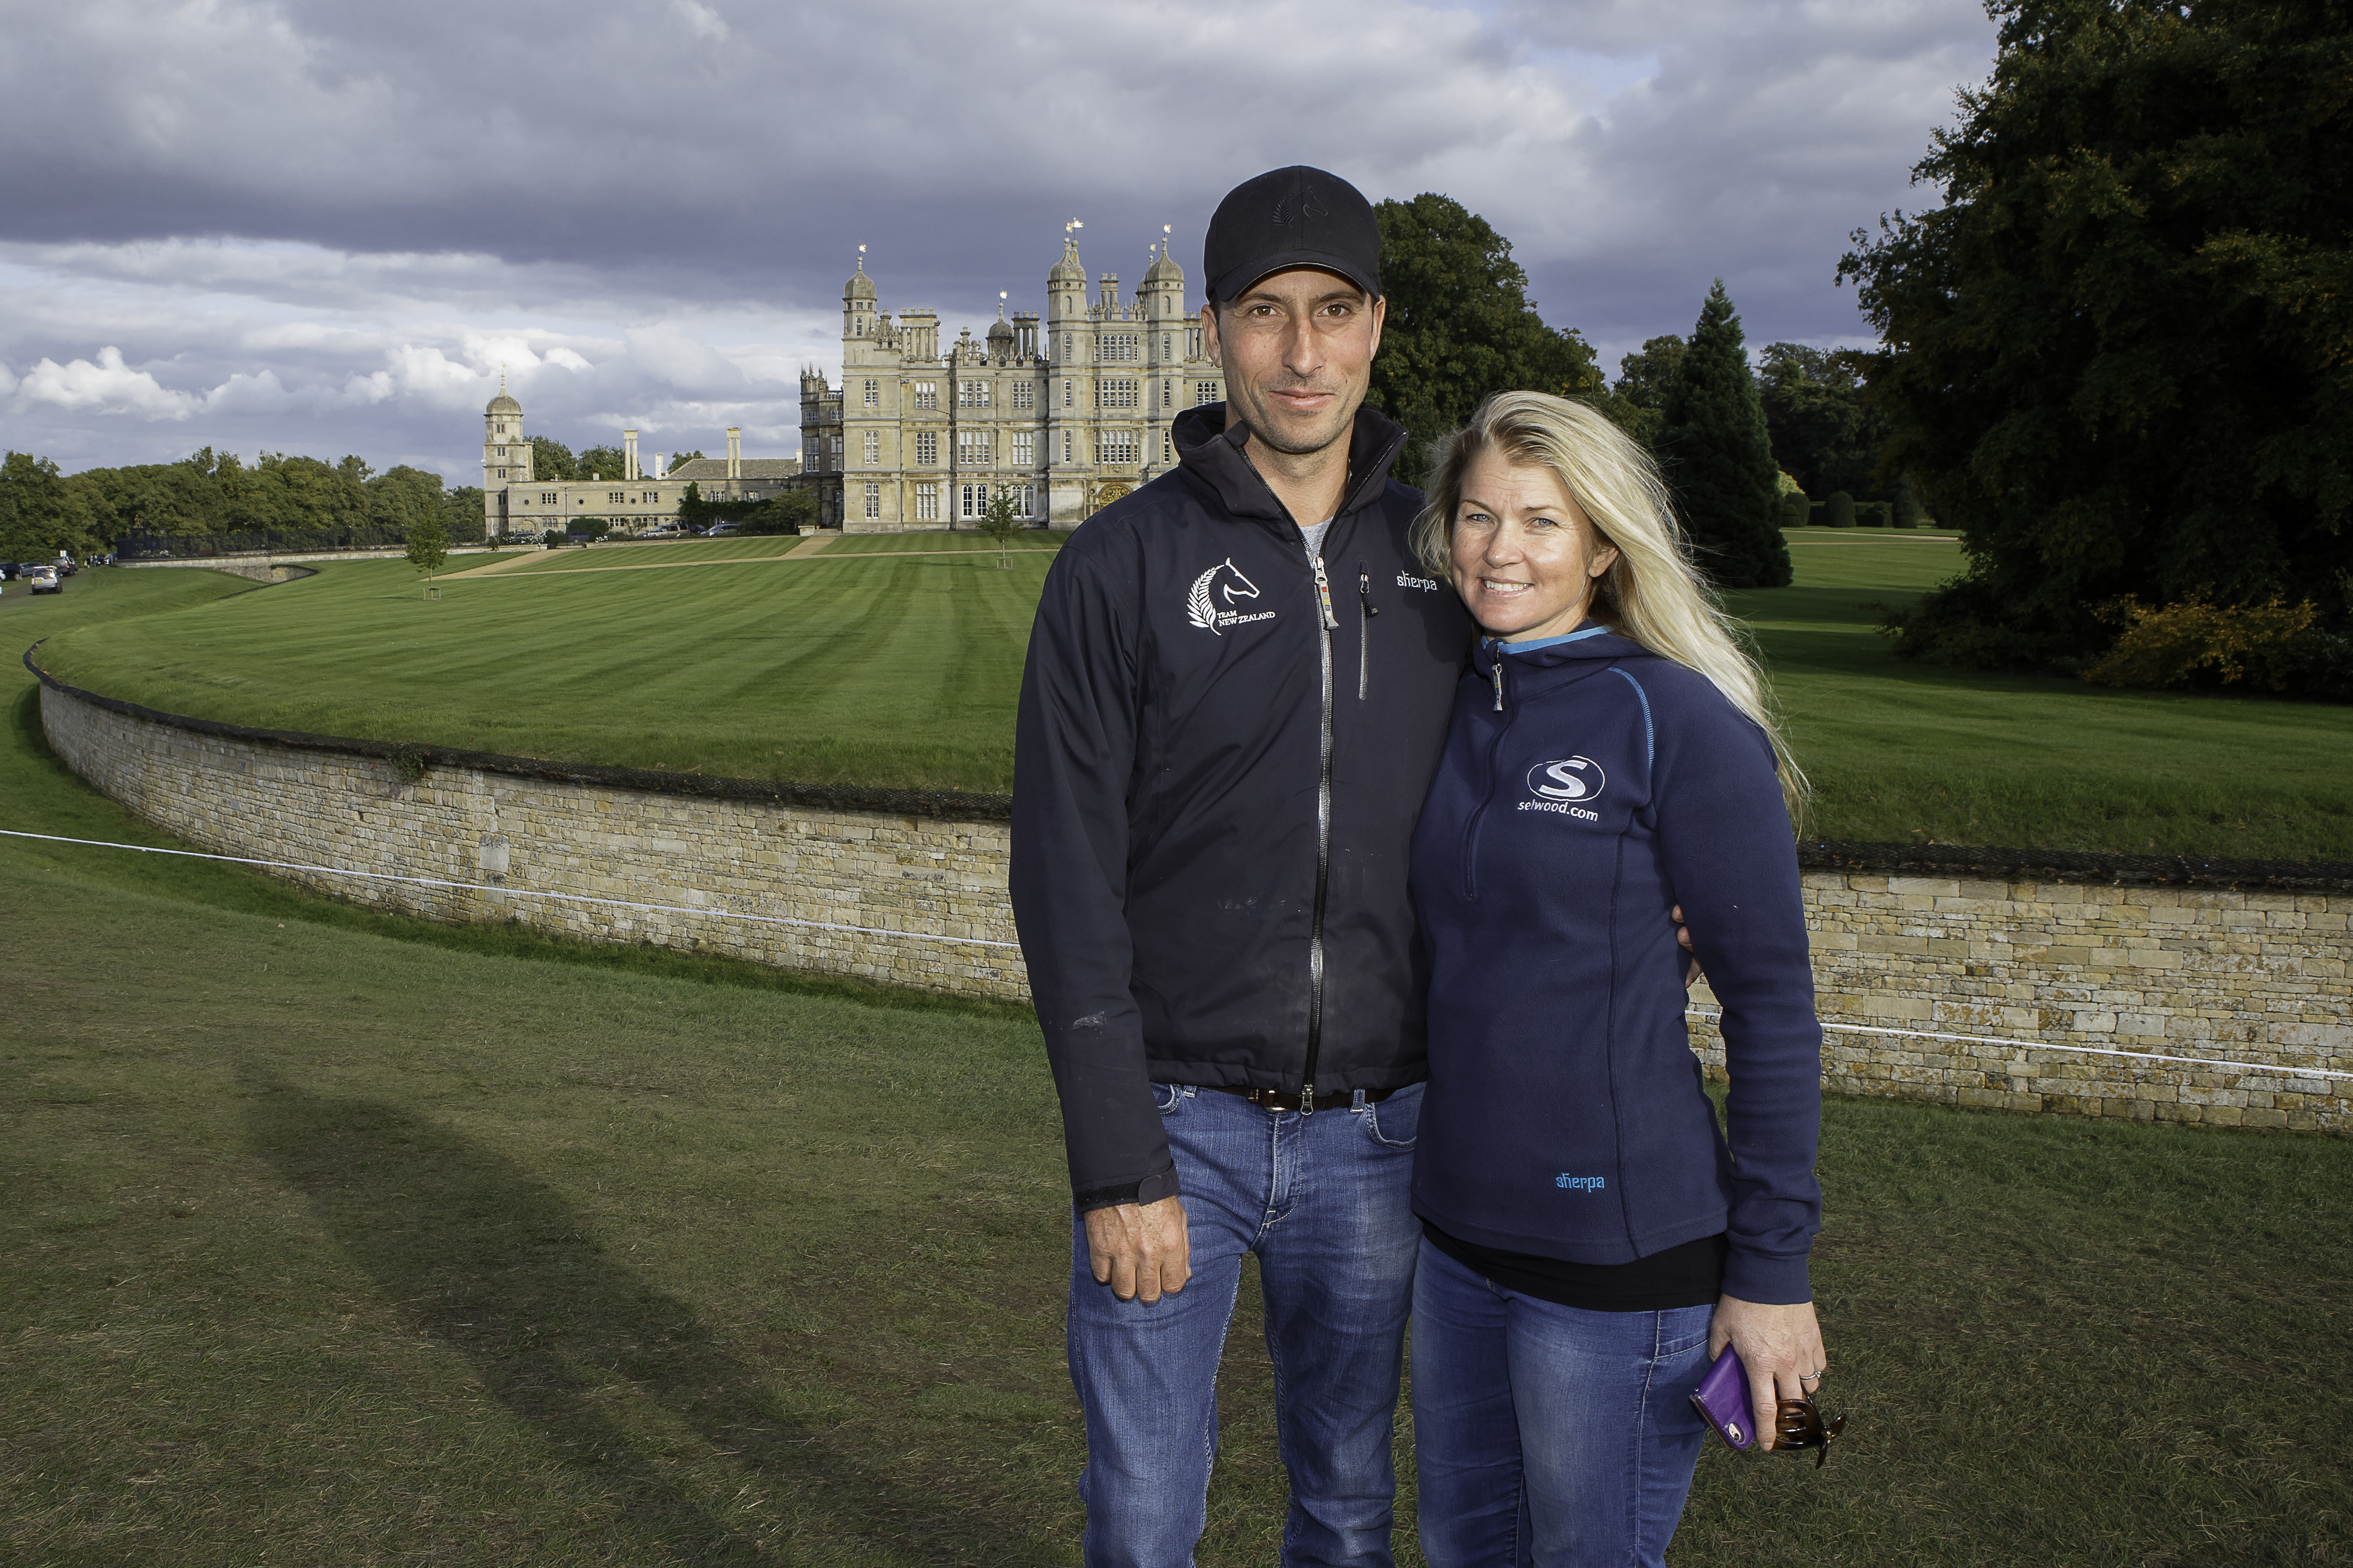 WIith Burghley House as the backdrop: NZL-Tim Price (RINGWOOD SKY BOY) INTERIM-2ND and Wife, Jonelle Price (CLASSIC MOET) INTERIM-3RD: 2015 GBR-Land Rover Burghley Horse Trial (Saturday 5 September) CREDIT: Libby Law COPYRIGHT: LIBBY LAW PHOTOGRAPHY